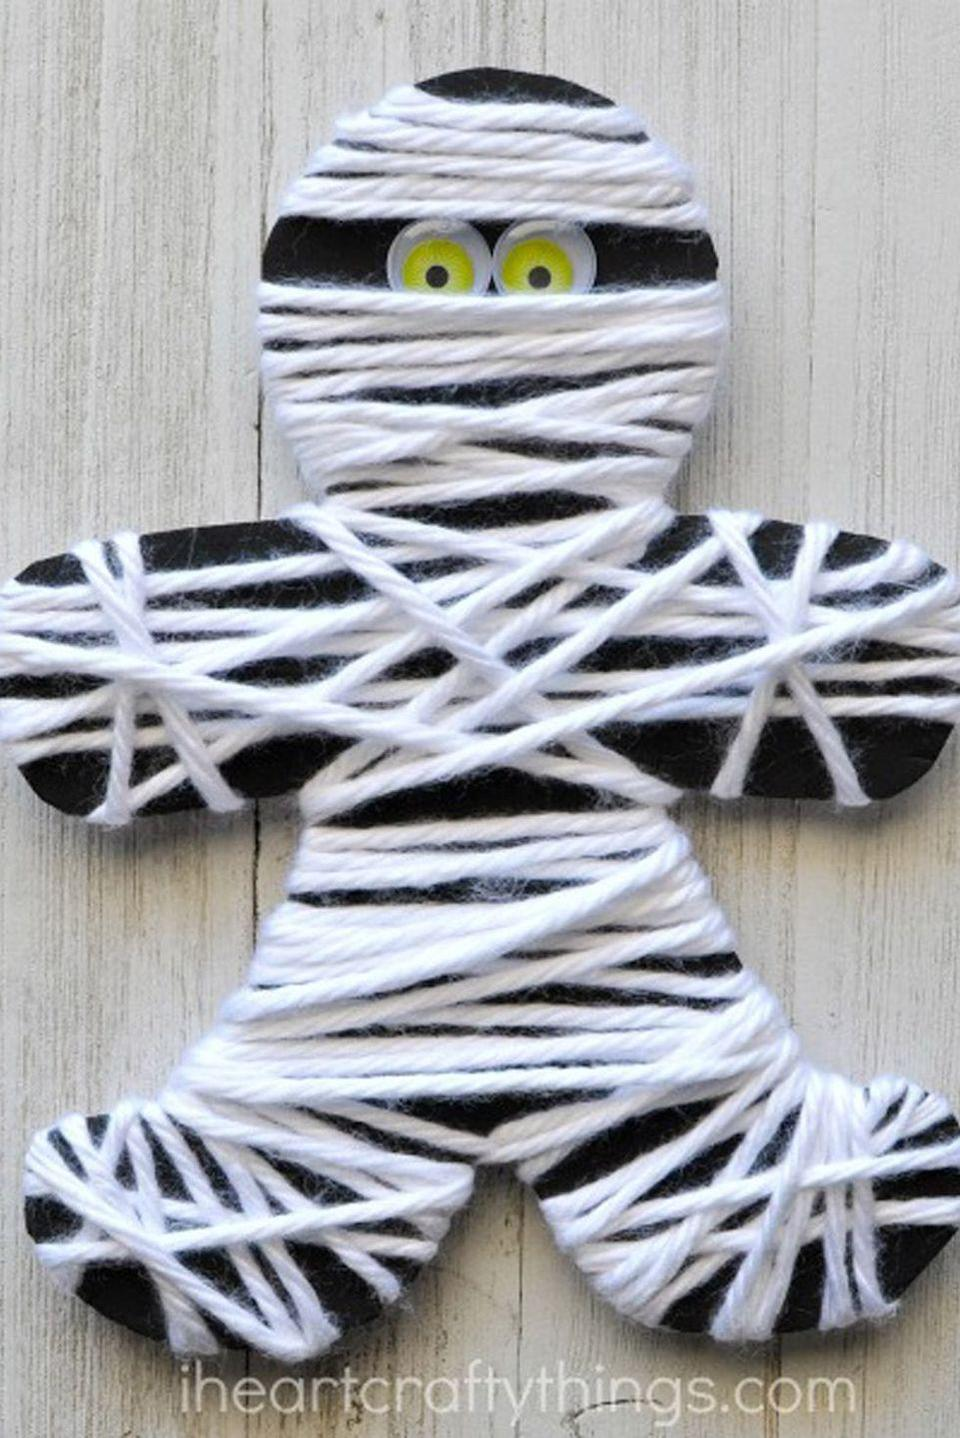 "<p>The only skill required for this cute mummy craft is to wrap string around a paper doll figure. The best part is, no matter which direction it goes, it will always be right! String together multiples for a creative garland.</p><p><strong>Get the tutorial at <a href=""https://iheartcraftythings.com/yarn-wrapped-mummy-craft.html"" rel=""nofollow noopener"" target=""_blank"" data-ylk=""slk:I Heart Crafty Things"" class=""link rapid-noclick-resp"">I Heart Crafty Things</a>.</strong></p><p><strong><a class=""link rapid-noclick-resp"" href=""https://www.amazon.com/Red-Heart-Super-Saver-Jumbo/dp/B00580663C?tag=syn-yahoo-20&ascsubtag=%5Bartid%7C10050.g.4950%5Bsrc%7Cyahoo-us"" rel=""nofollow noopener"" target=""_blank"" data-ylk=""slk:SHOP WHITE YARN"">SHOP WHITE YARN</a><br></strong></p>"